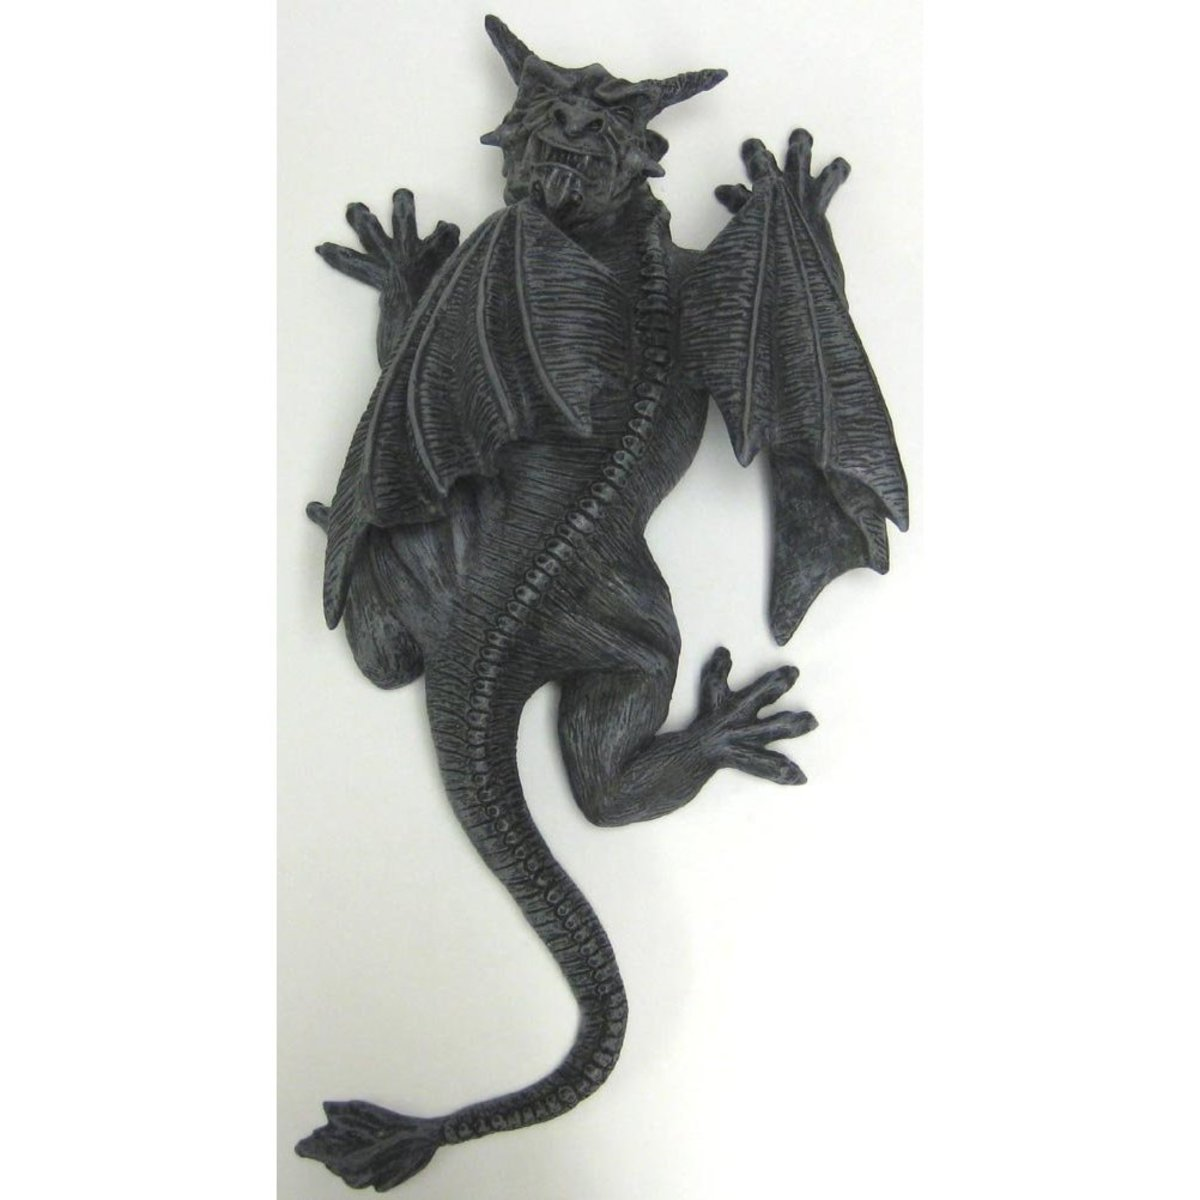 Wall Climbing Demon Wall Decor Gargoyle